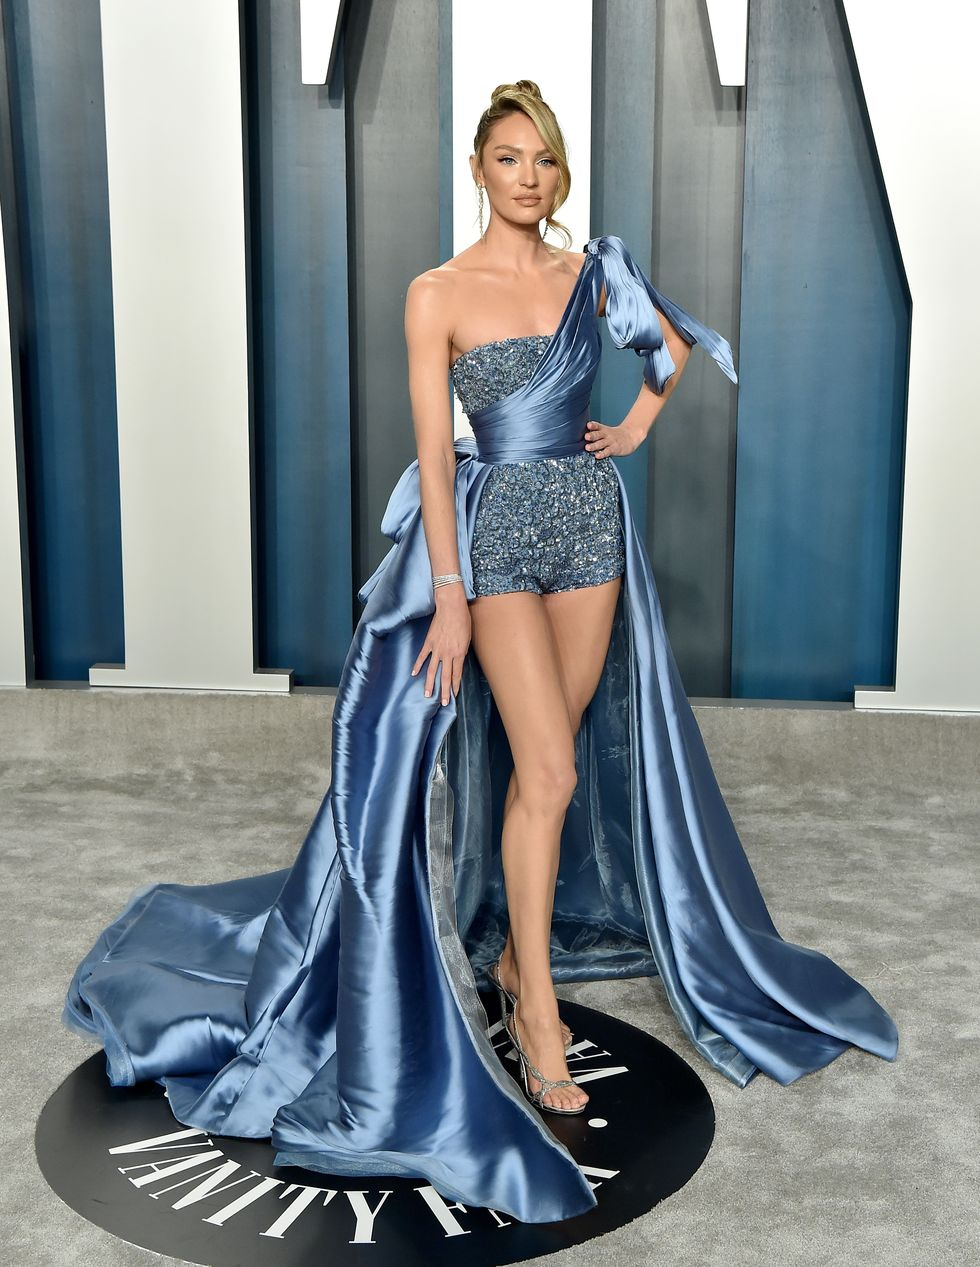 The Sexiest Dresses at the 2020 Oscar After-Parties   Glam dresses, Gala dresses, Fashion dresses